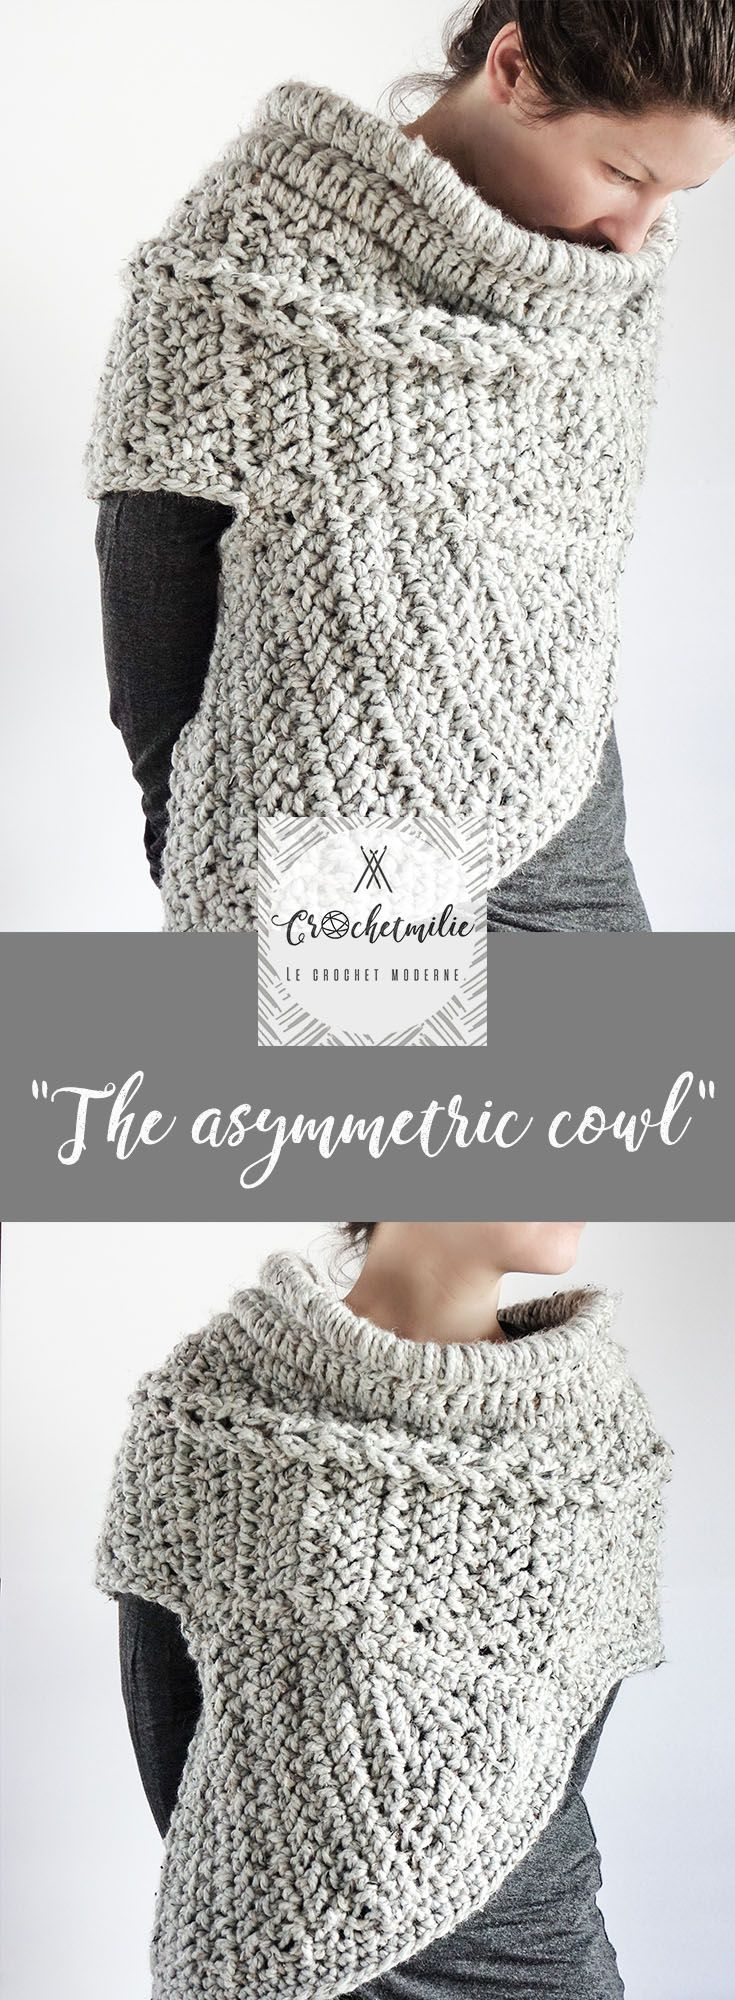 The asymmetric cowl by CROCHETMILIE   - - - - chunky yarn, winter style, fall style, hunger game, katniss cowl, huntress, chic scarf, unique top, walking in the woods, wool love, warm, cozy